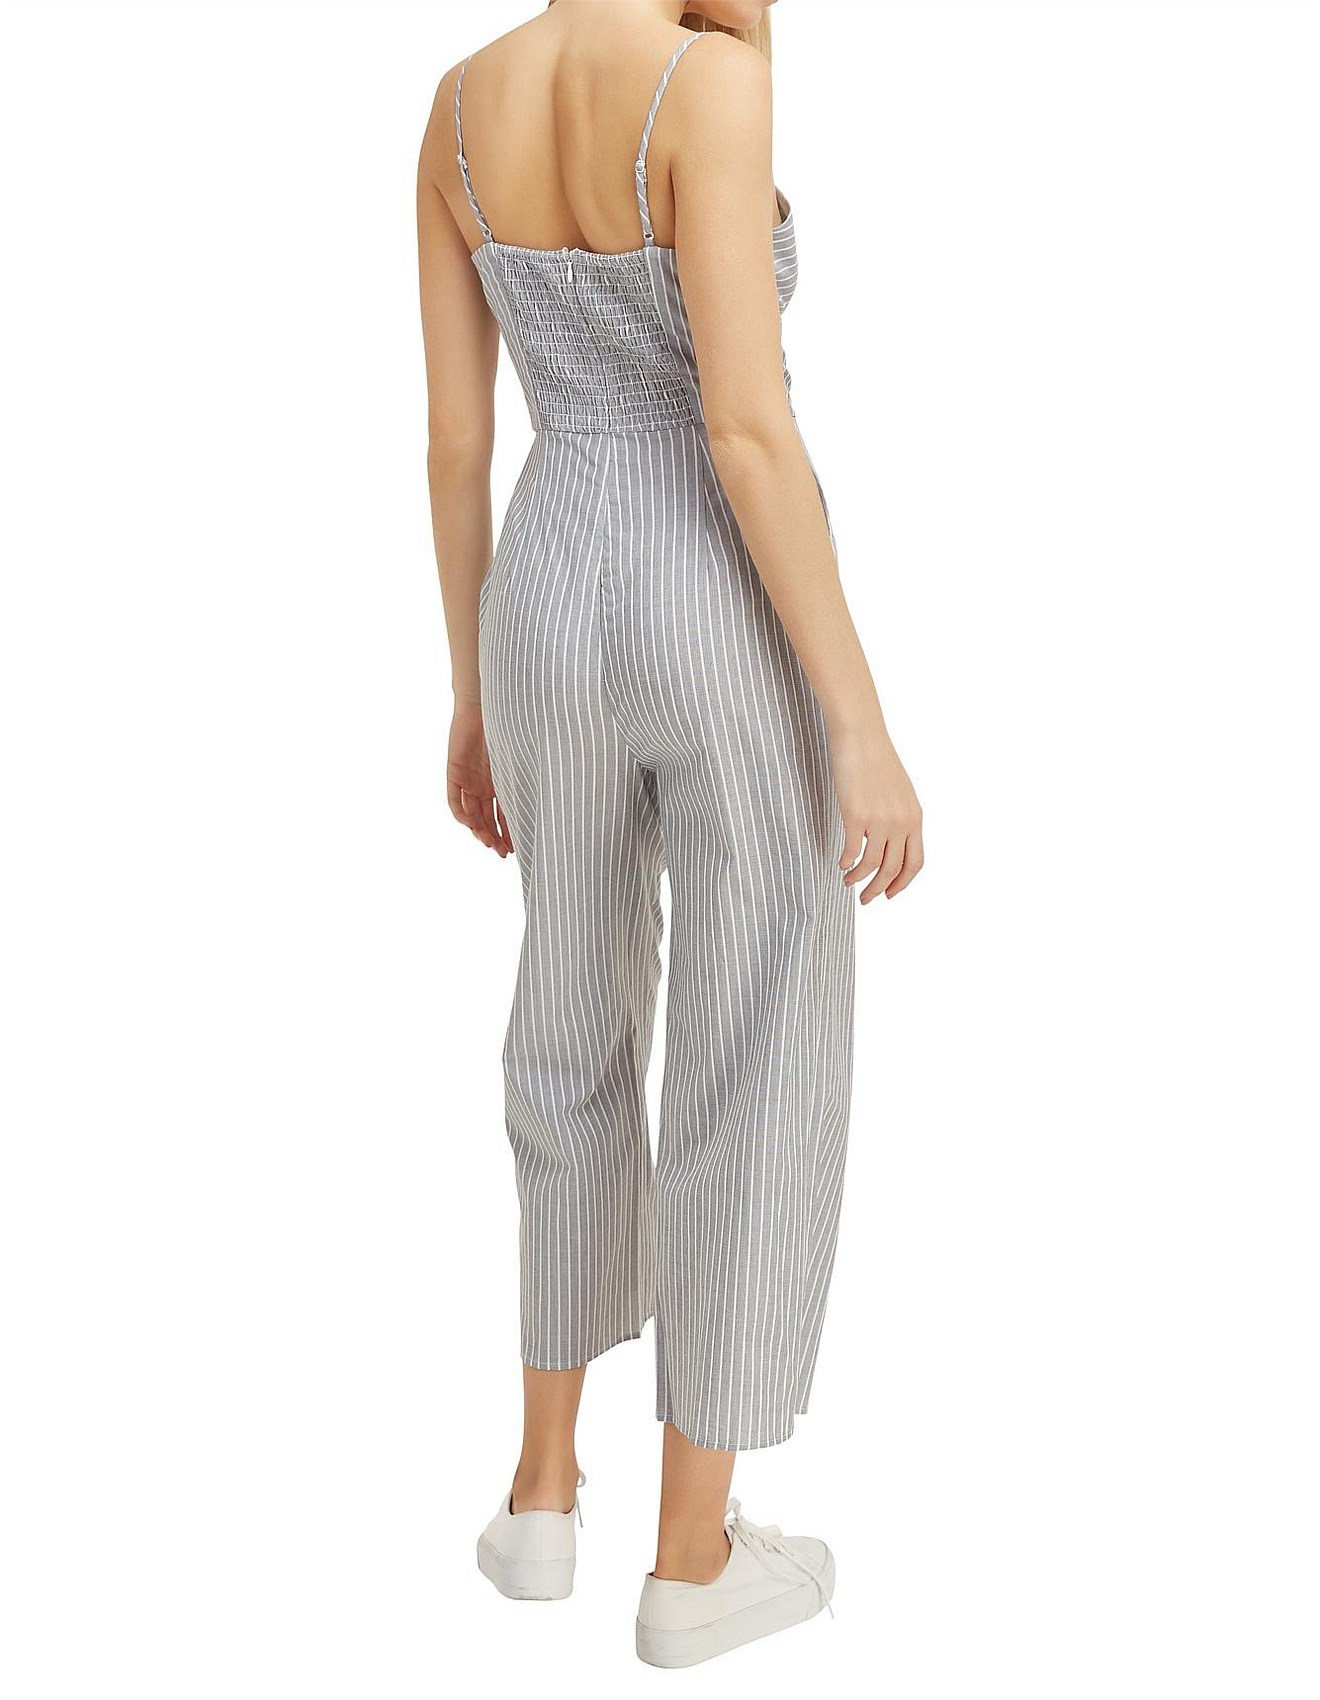 It is an image of Revered The Fifth Label Moonlit Jumpsuit